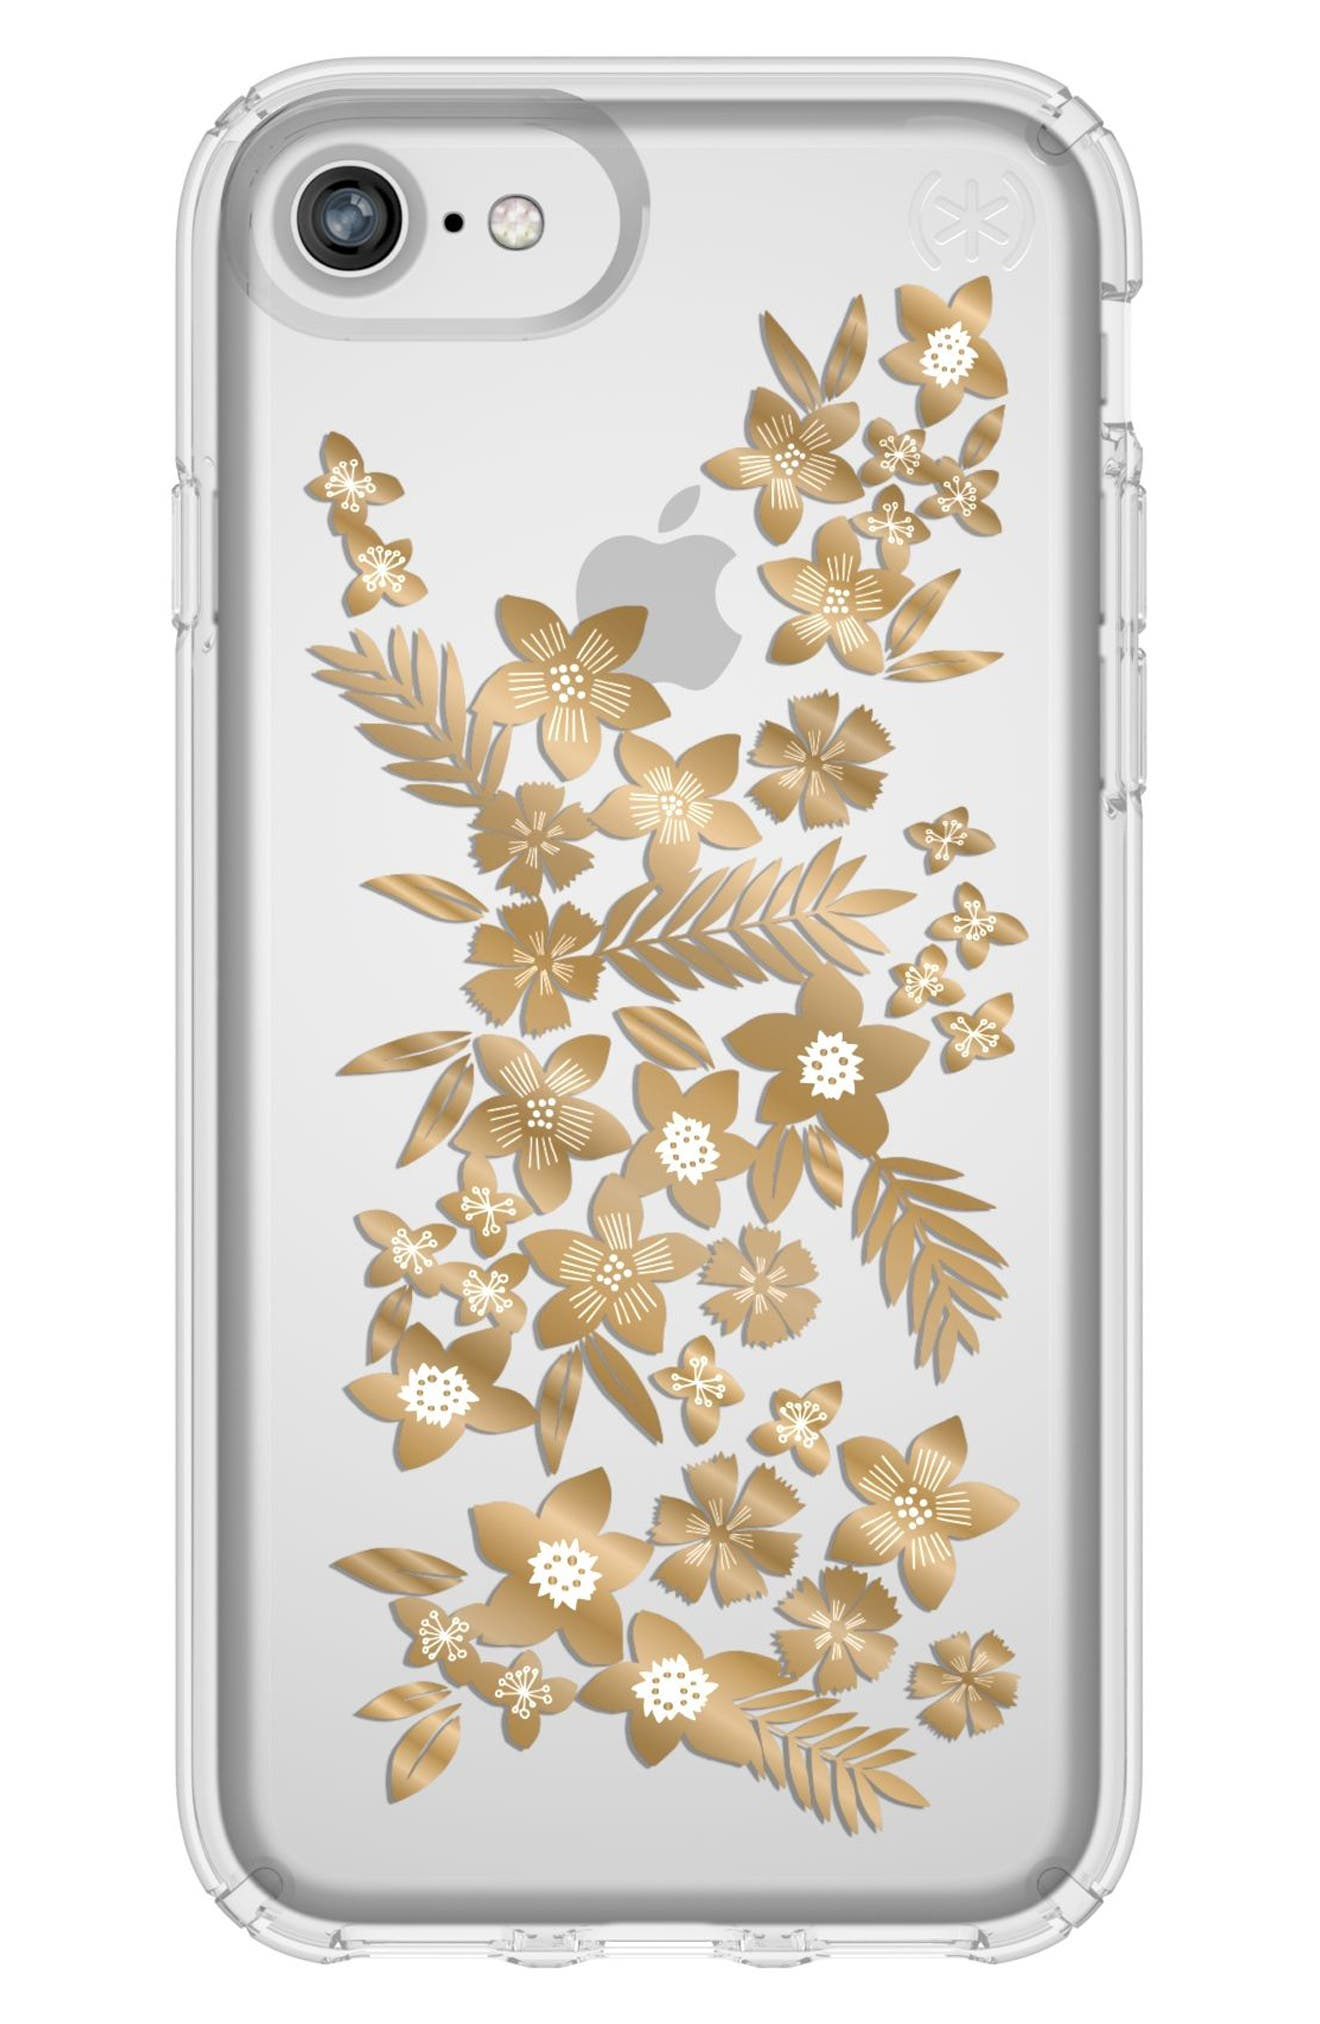 Main Image - Speck Transparent Shimmer Floral Metallic iPhone 6/6s/7/8 Case